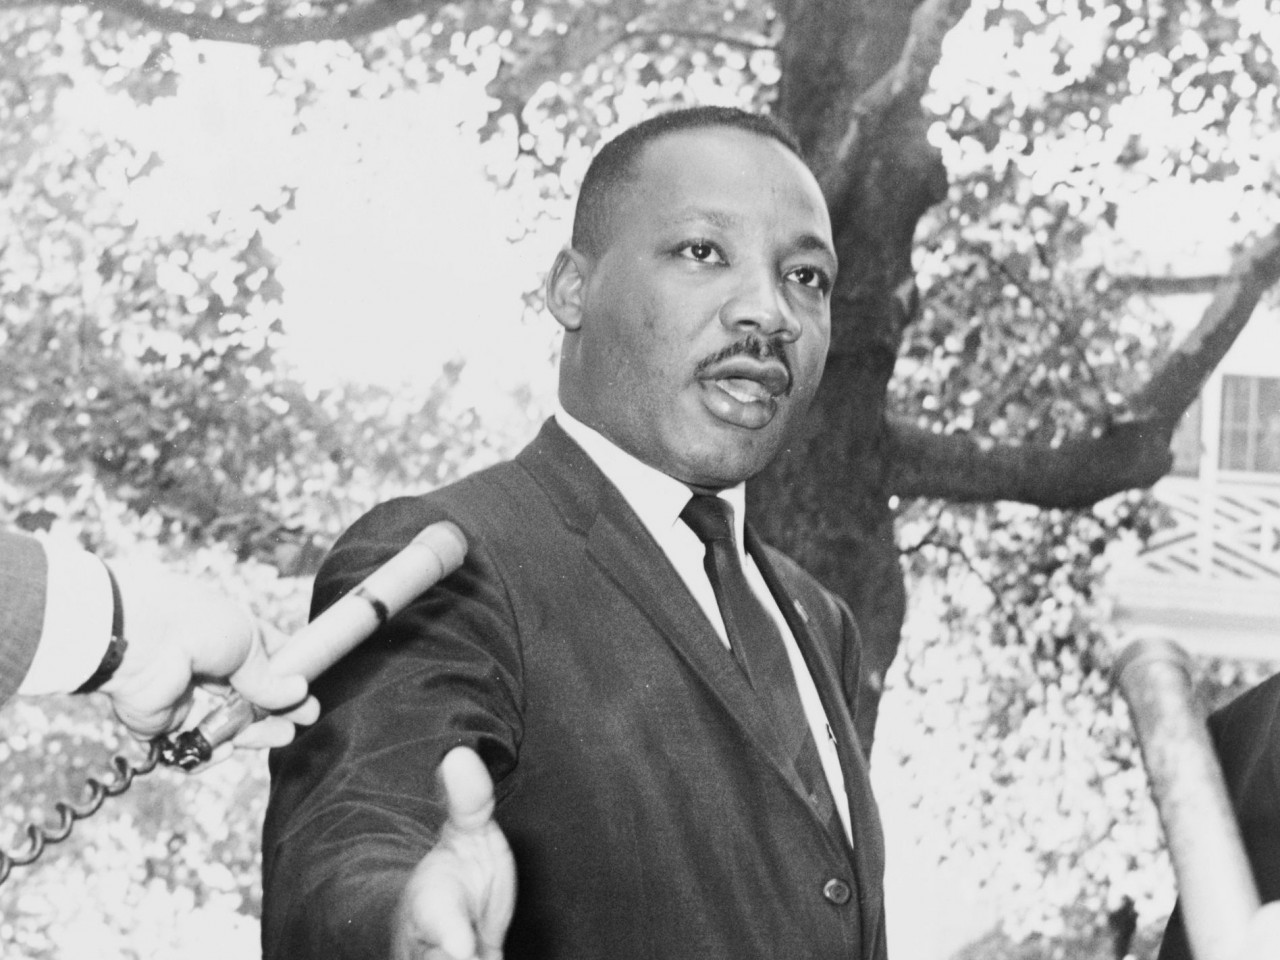 a life and works of martin luther king jr In this dr martin luther king biography, we outline what dr martin luther king was most well known for: his leadership to help synergize the diverse ethnicities of mankind read this dr martin luther king biography now.